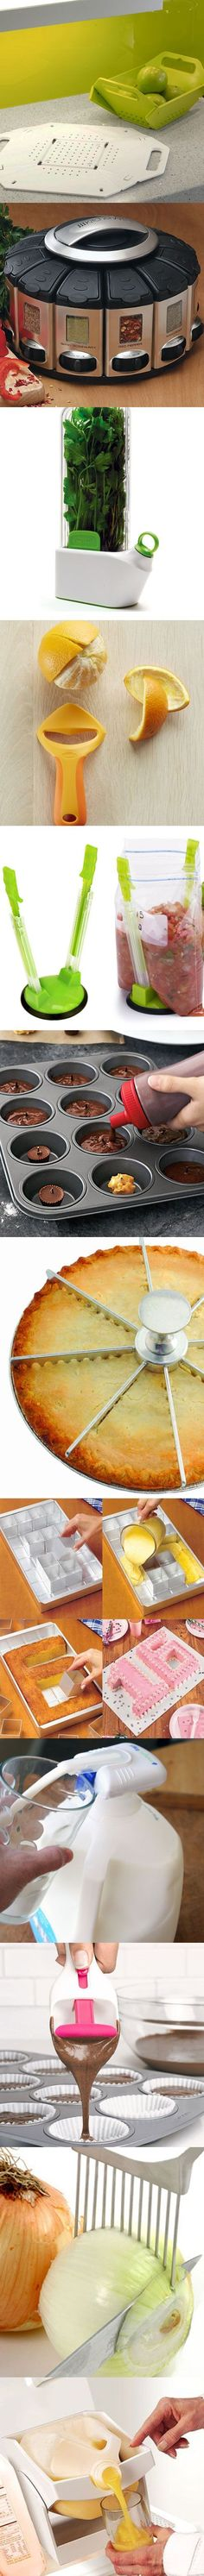 12 Borderline Genius Gadgets You Need For Your Kitchen And Where You Can Buy Them.